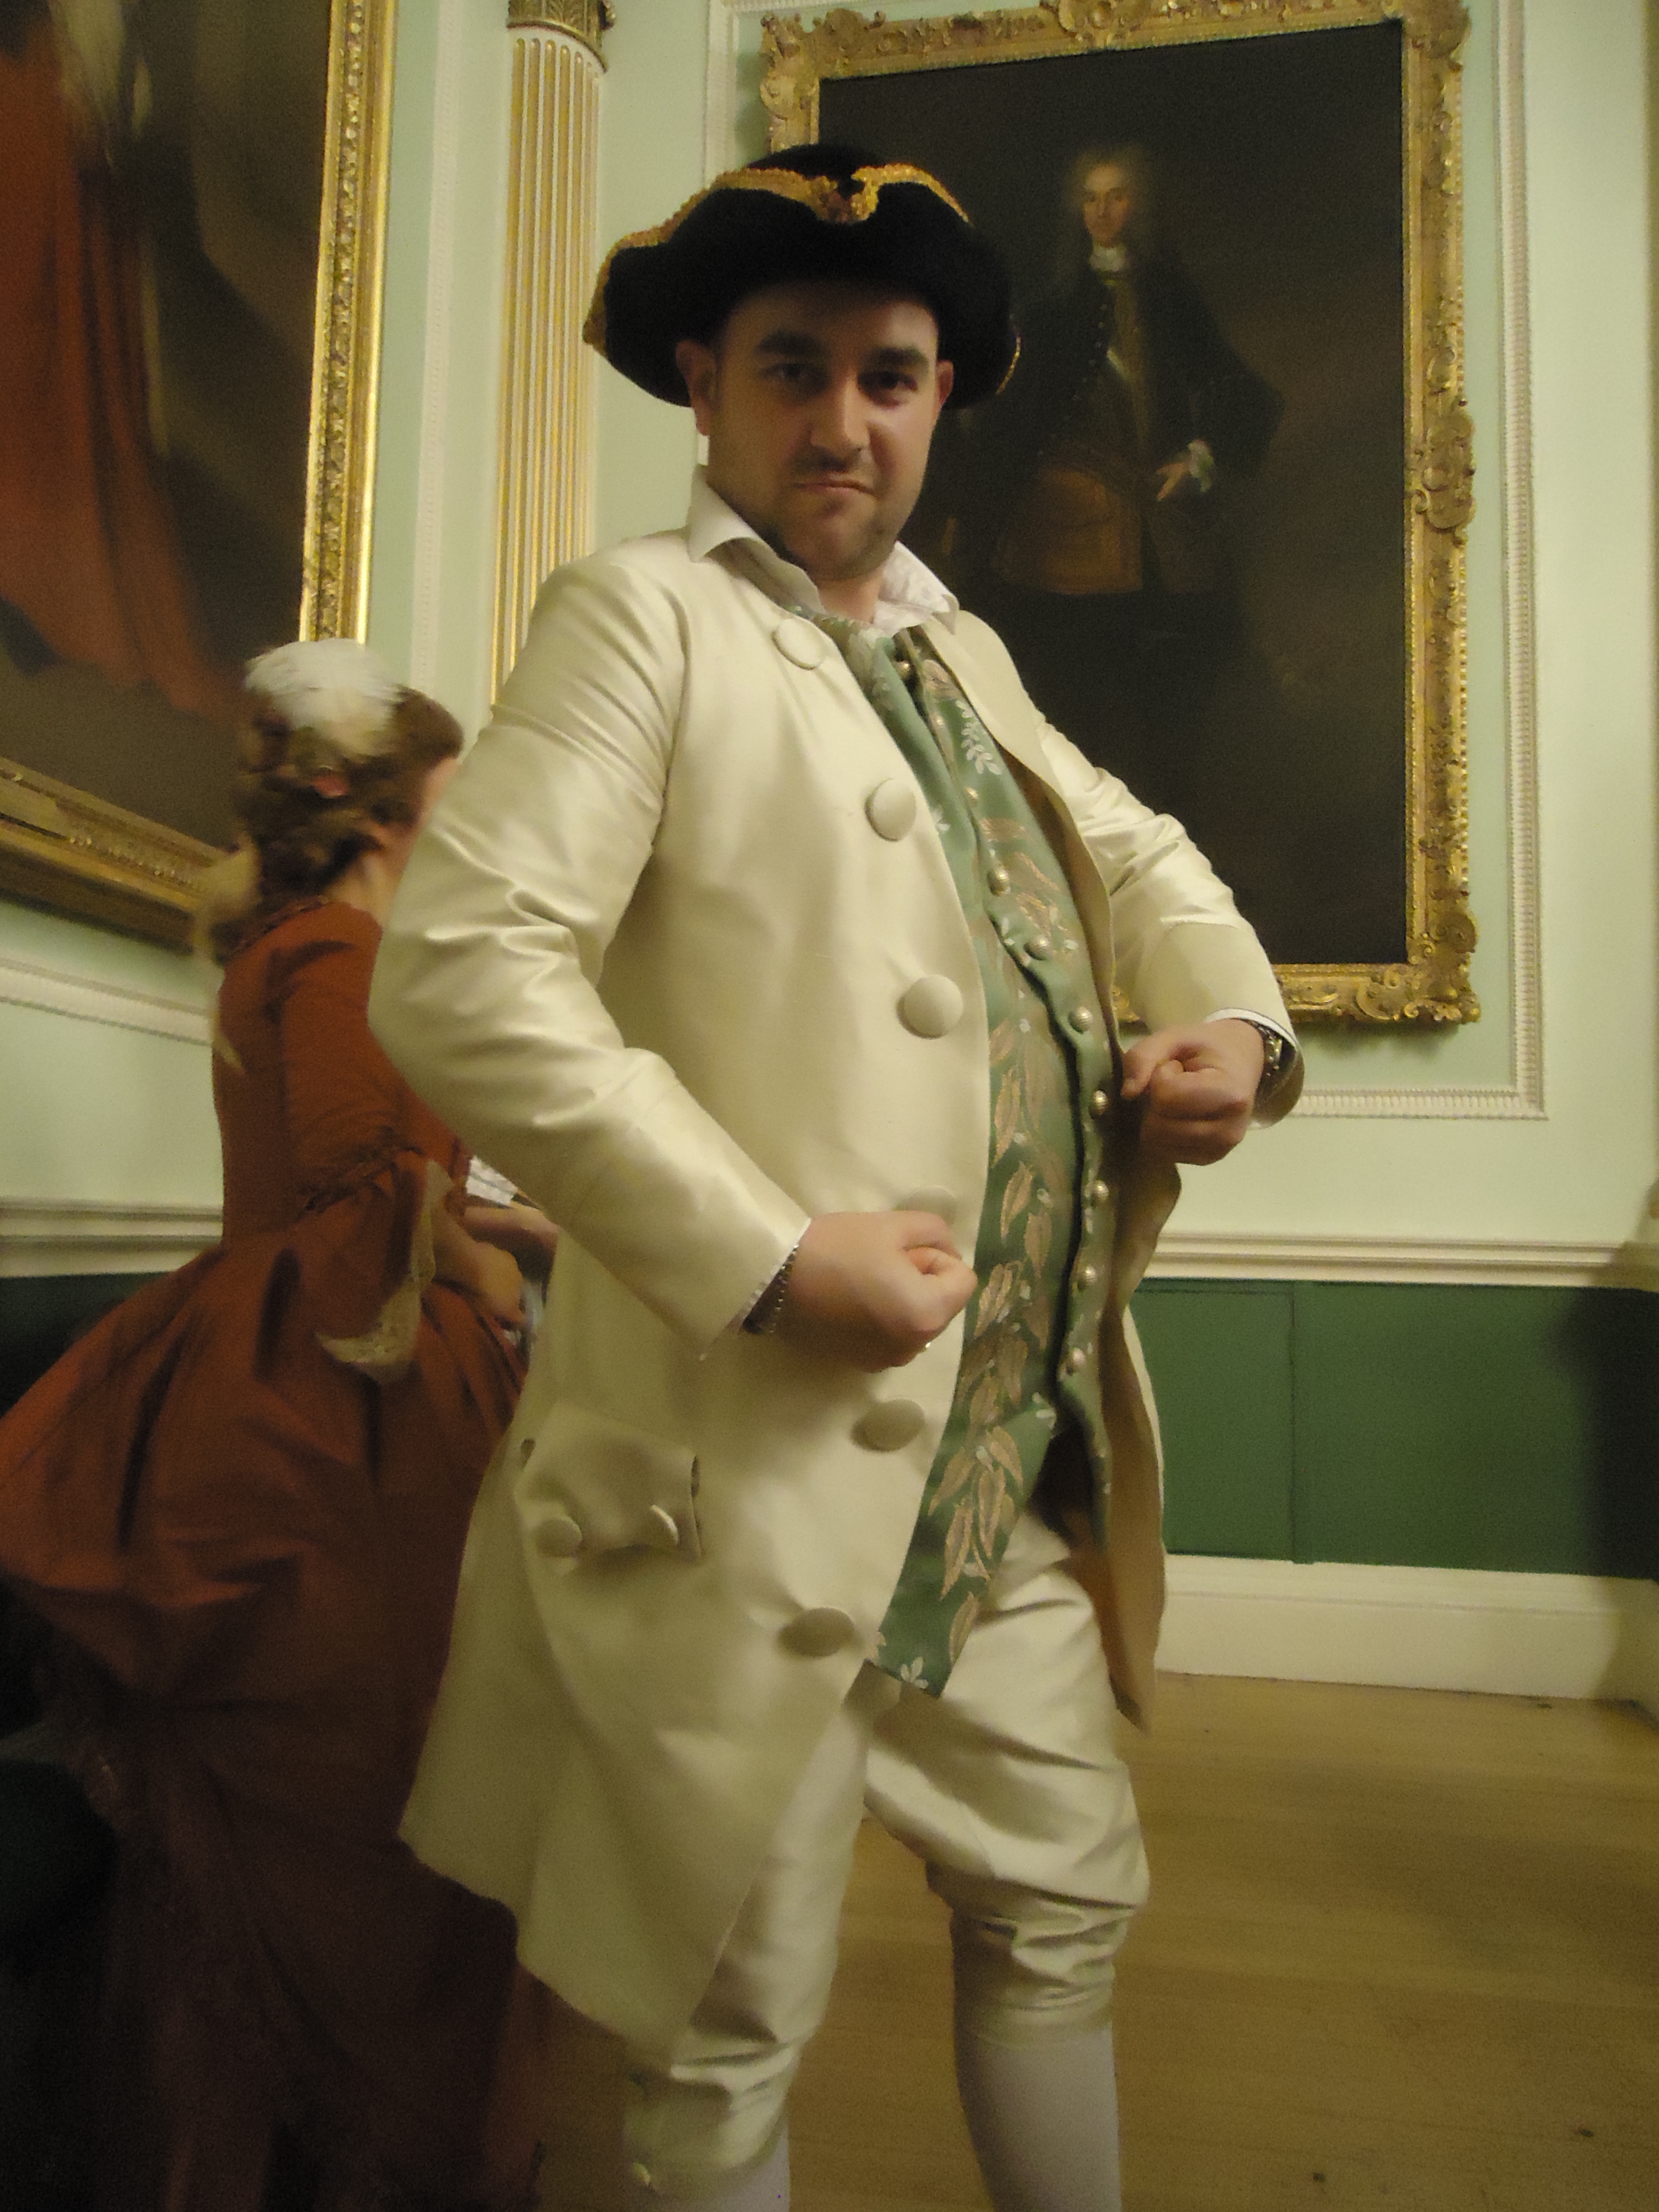 hand made eighteenth century mens costume by HandBound Costumes, replica made historical costumes, bespoke men's tailoring and historical garments, jacket waistocat and breeches; the 3 piece suit from the 1700's